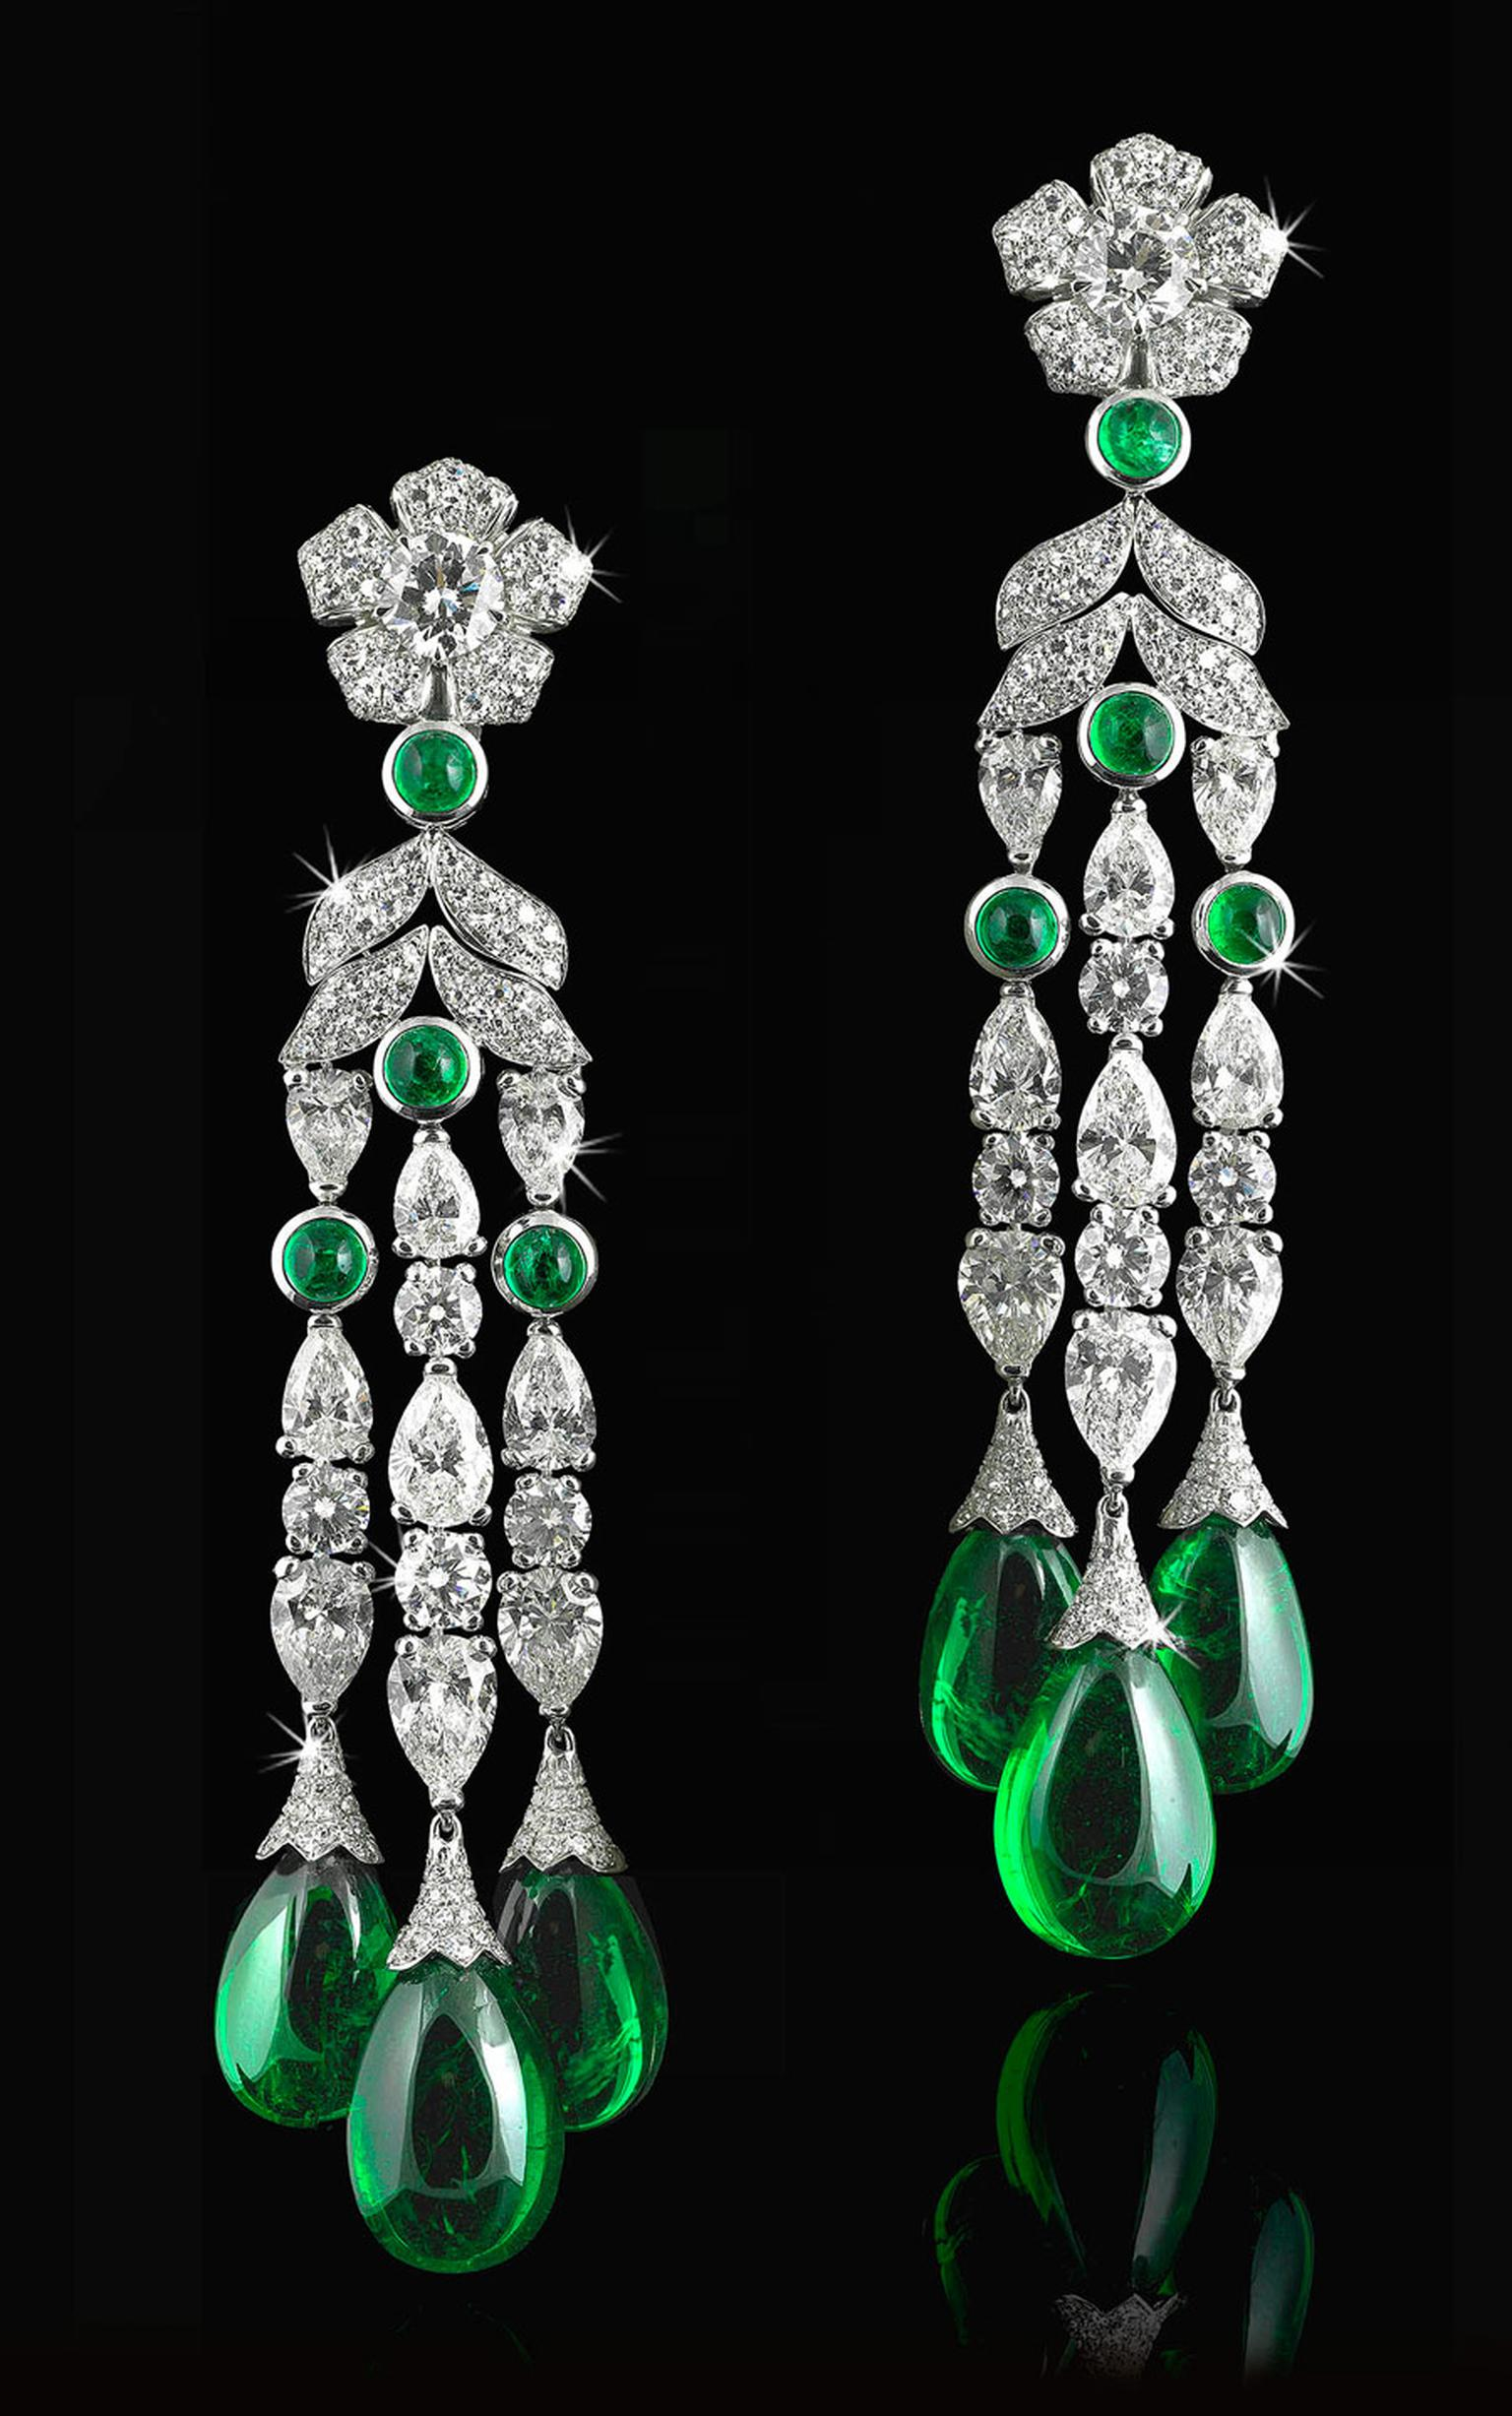 abochon-Cut-Drop-Earrings-With-White-Diamonds.jpg